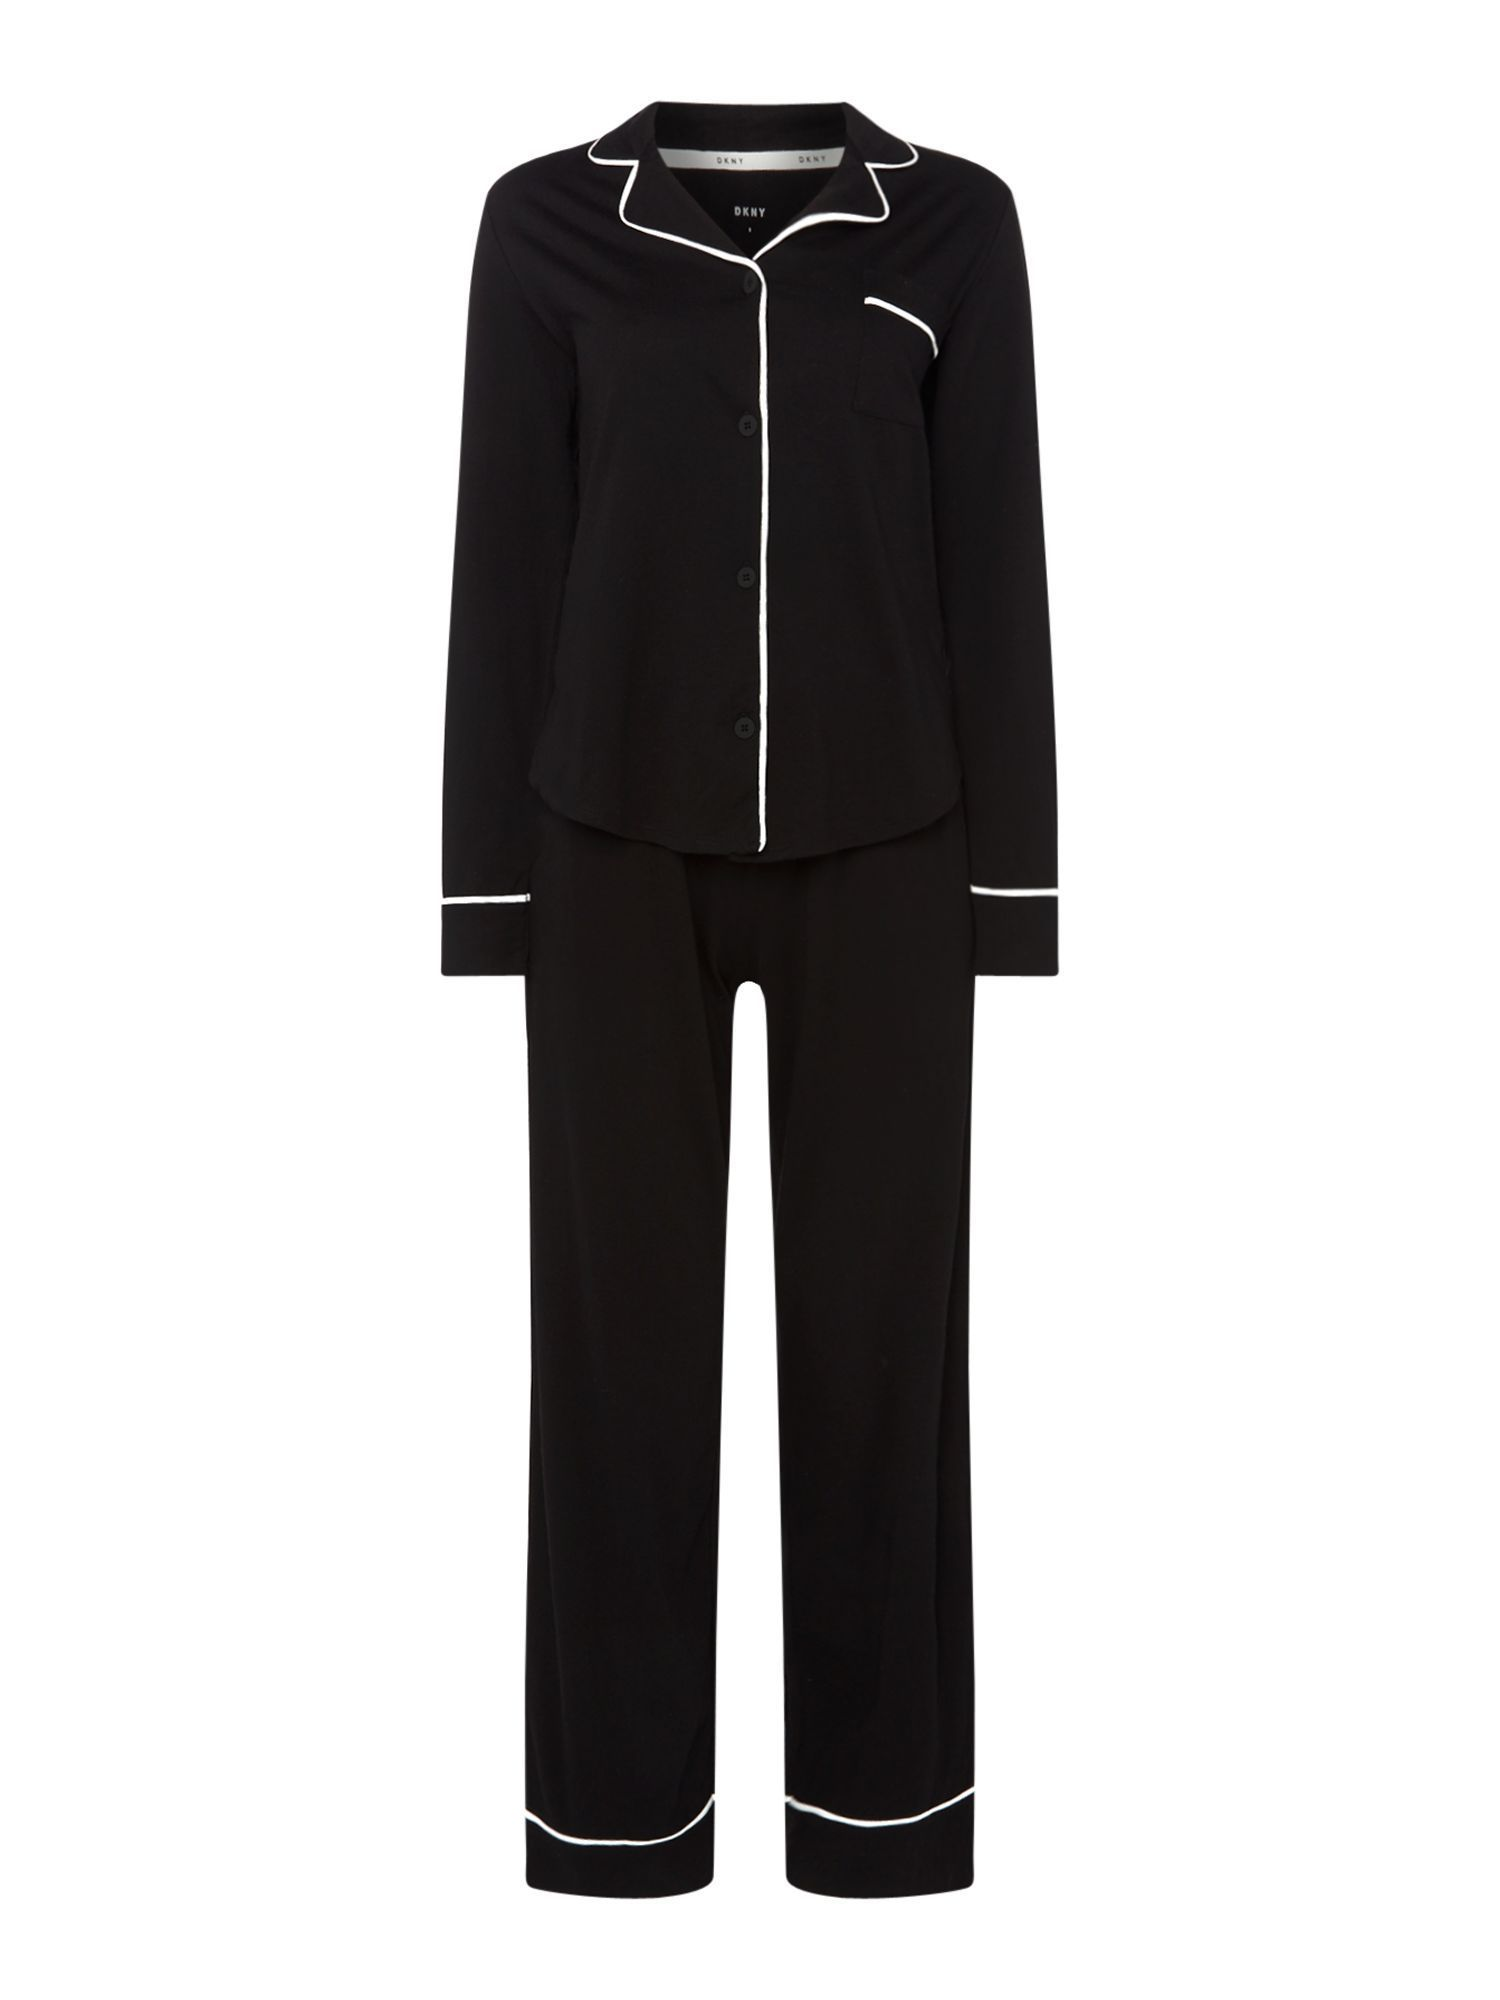 DKNY Signature Long Sleeve Top And Pant Set.  Buy your DKNY Signature online now at House of Fraser. Why not Buy and Collect in-store?